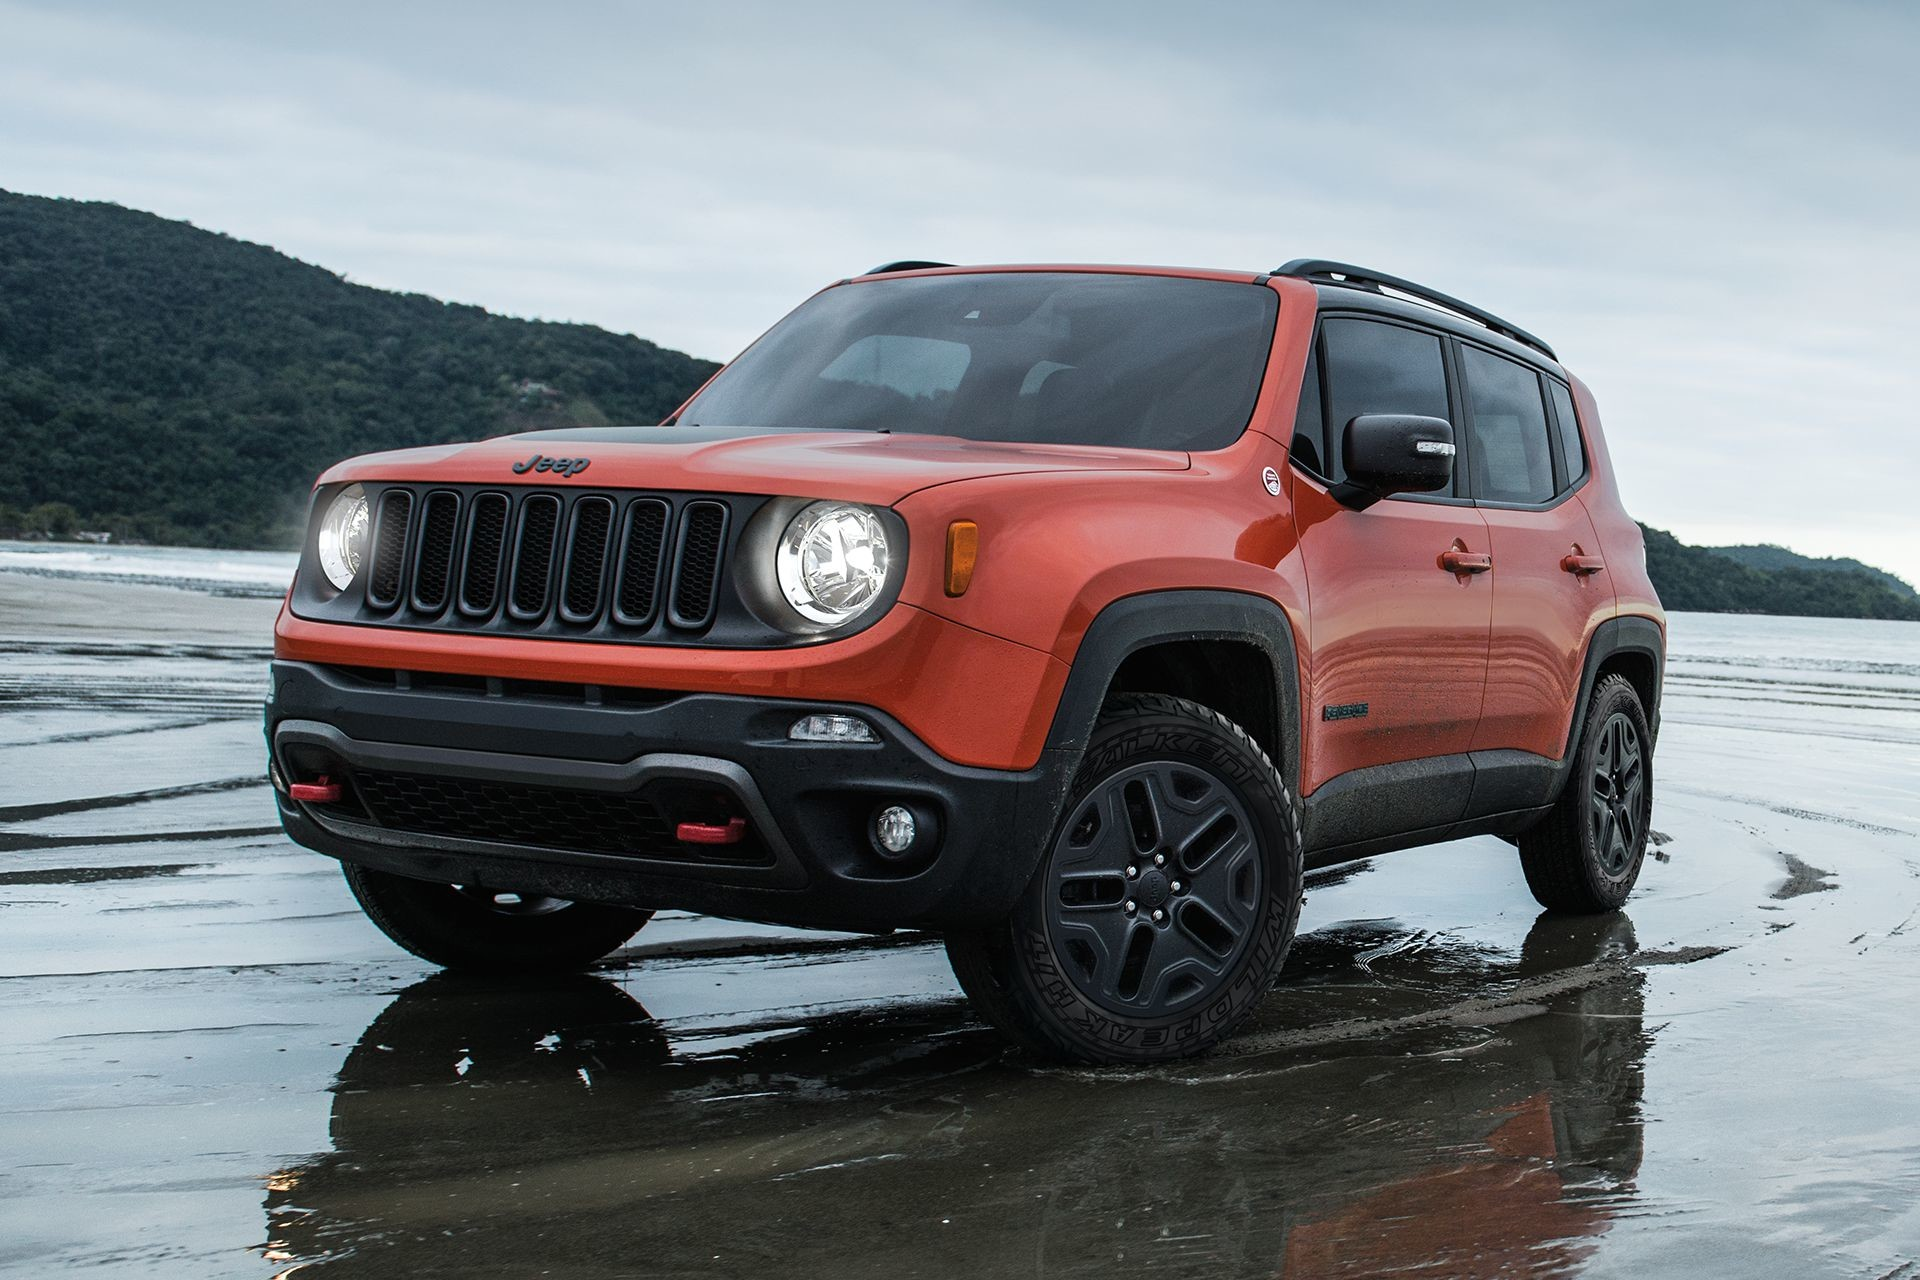 2018 Jeep Renegade 4x4 driving in snow